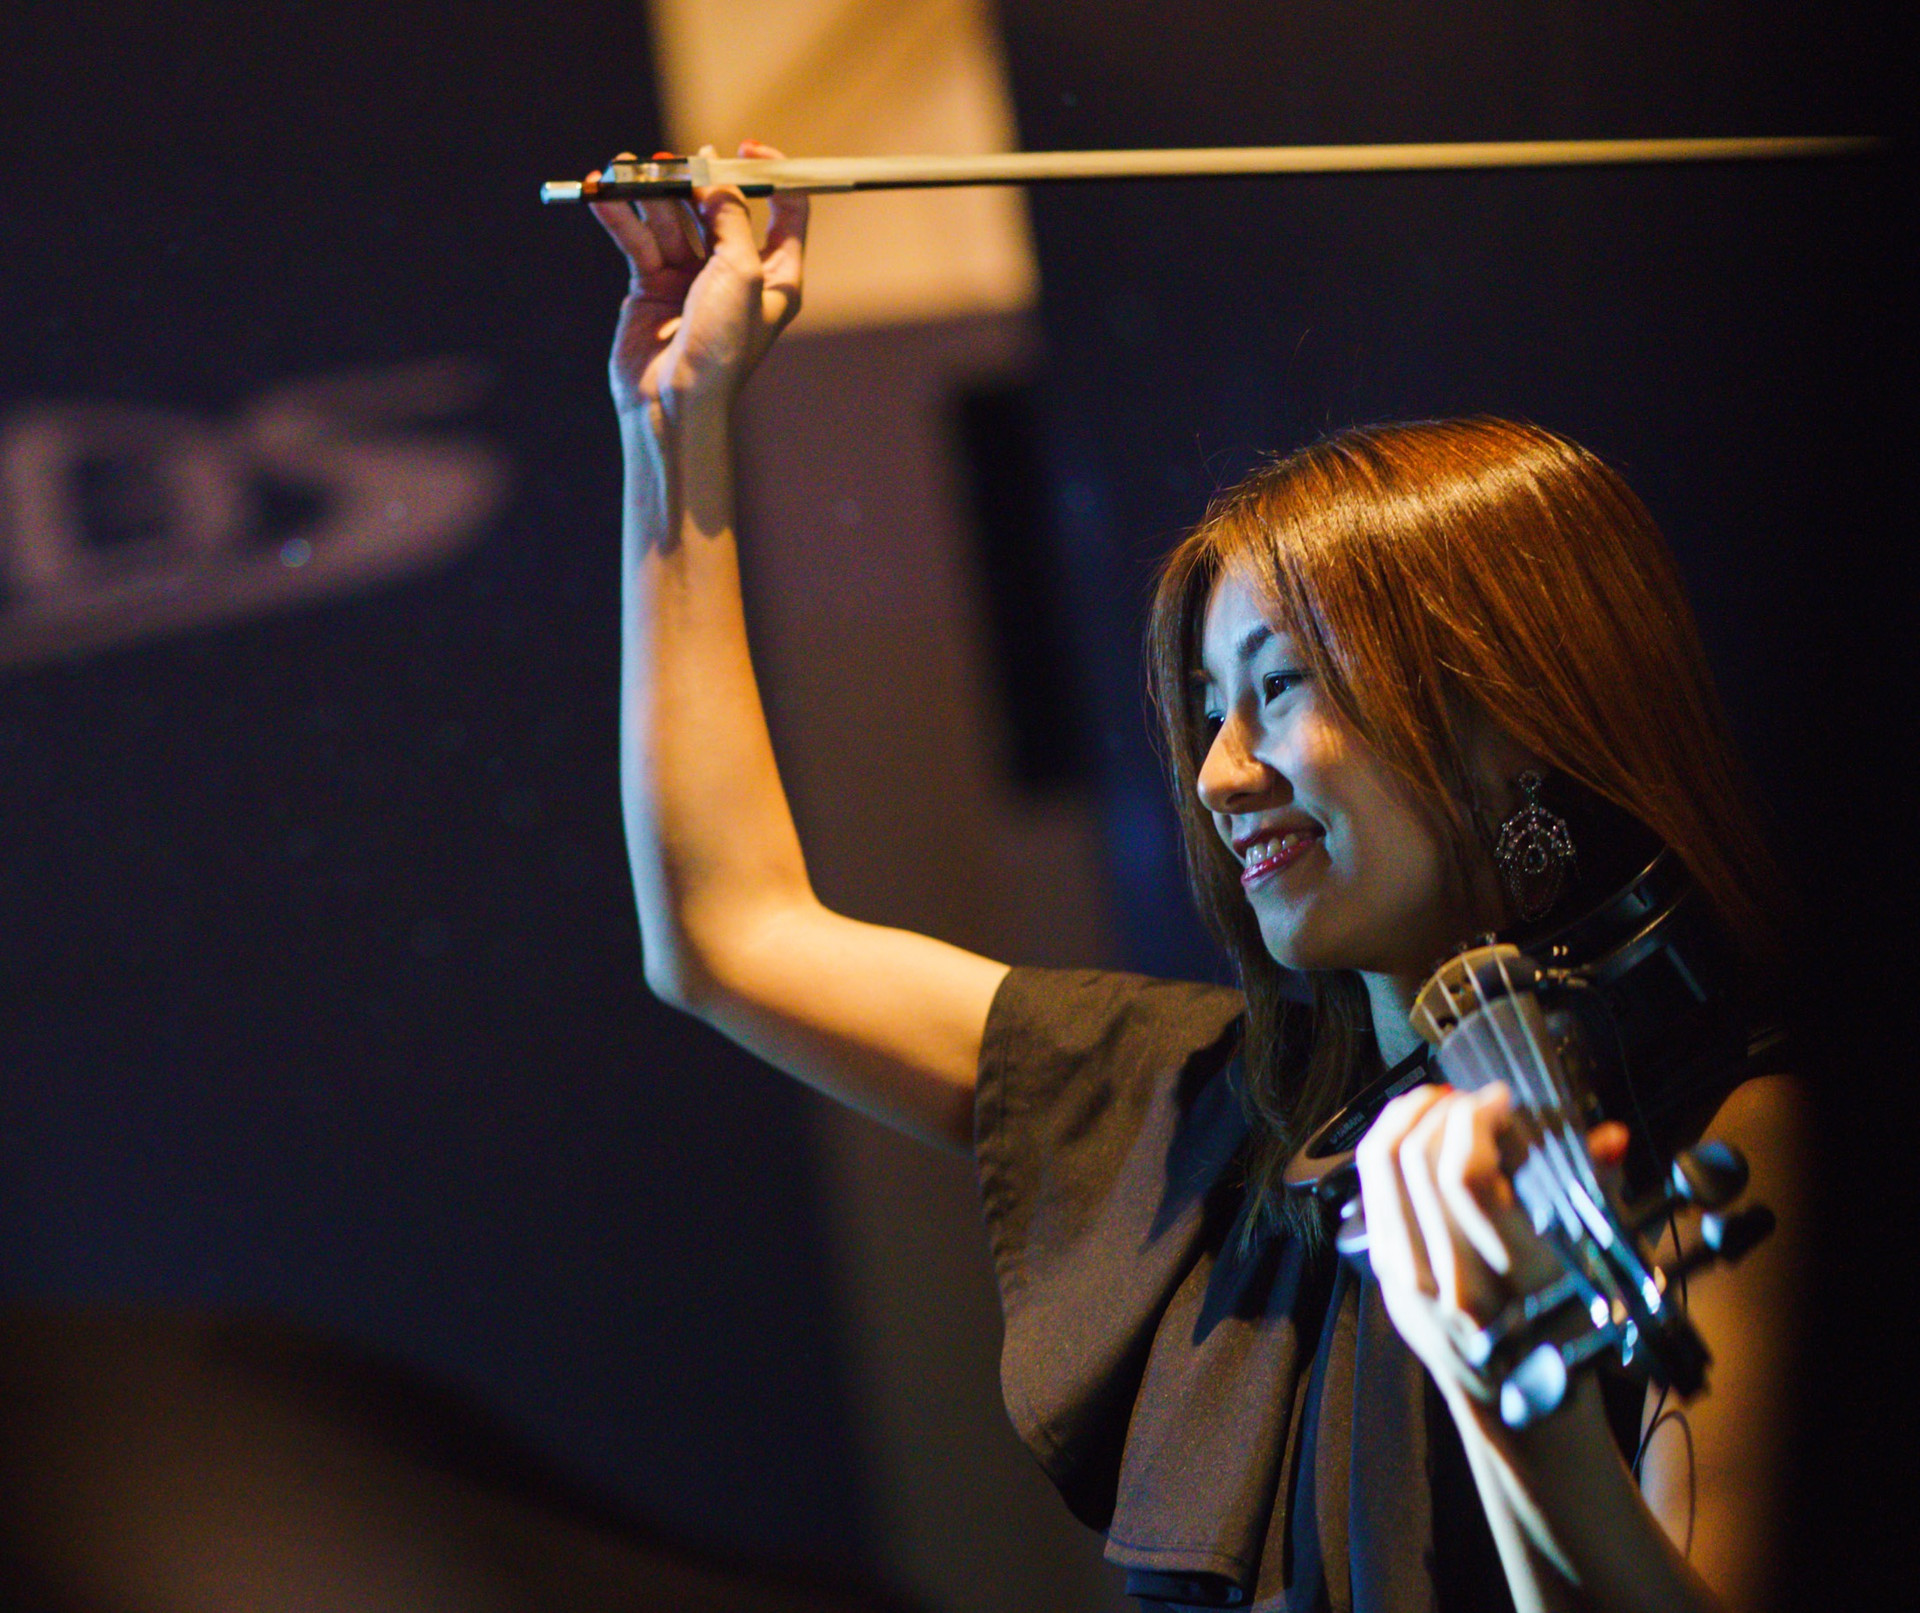 An asian lady playing the violin